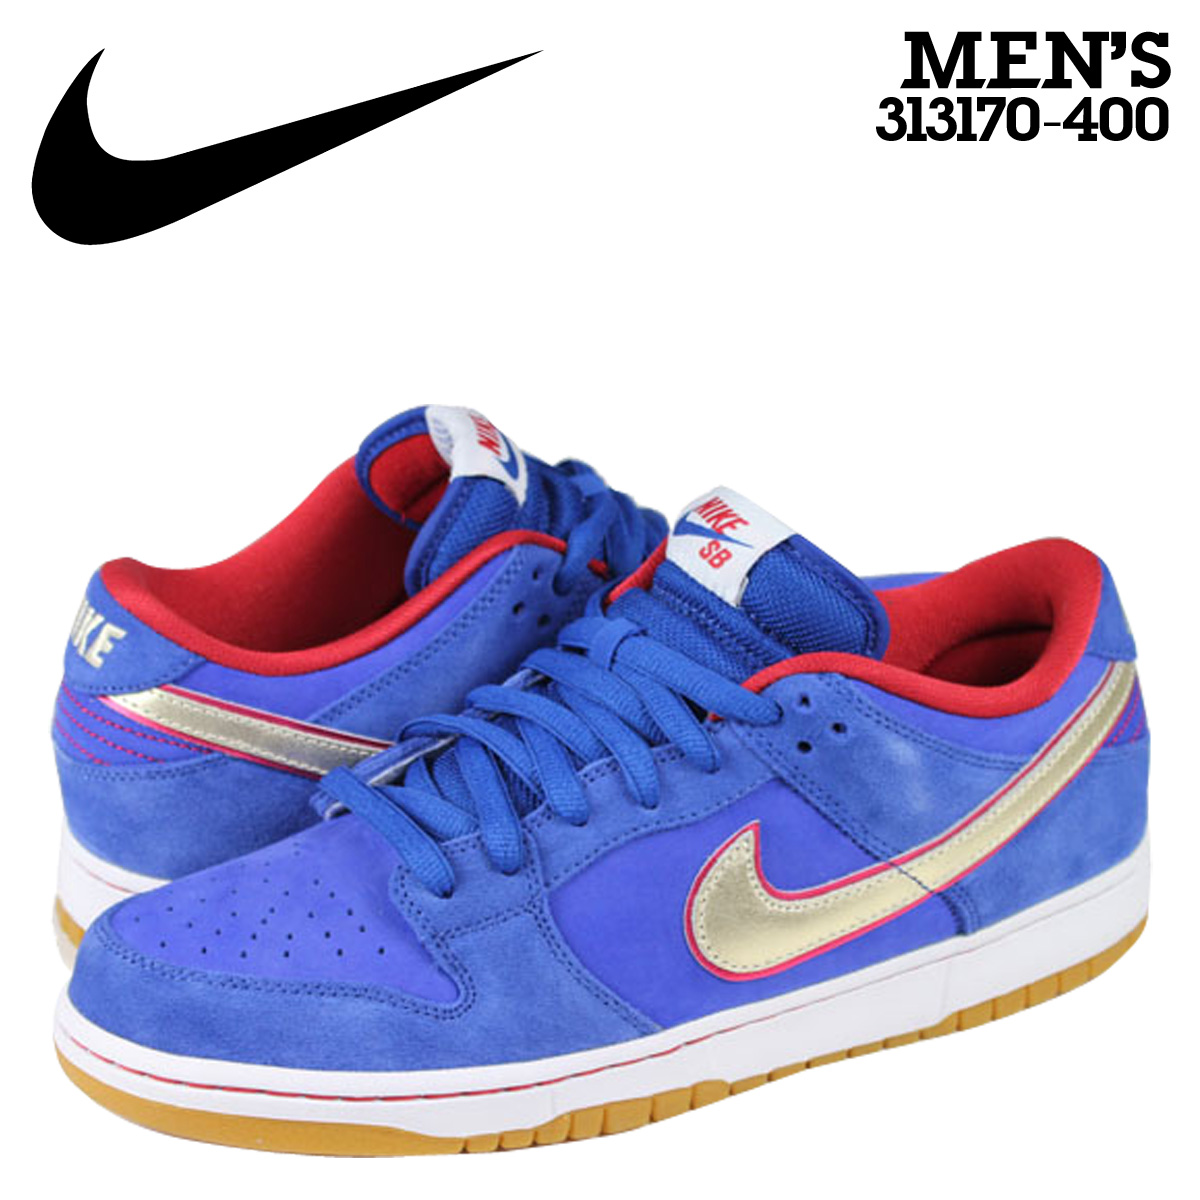 Nike NIKE dunk sneakers DUNK LOW PREMIUM SB ERIC KOSTON dunk Pro SB  313170-400 Blue mens bc6339bf529a